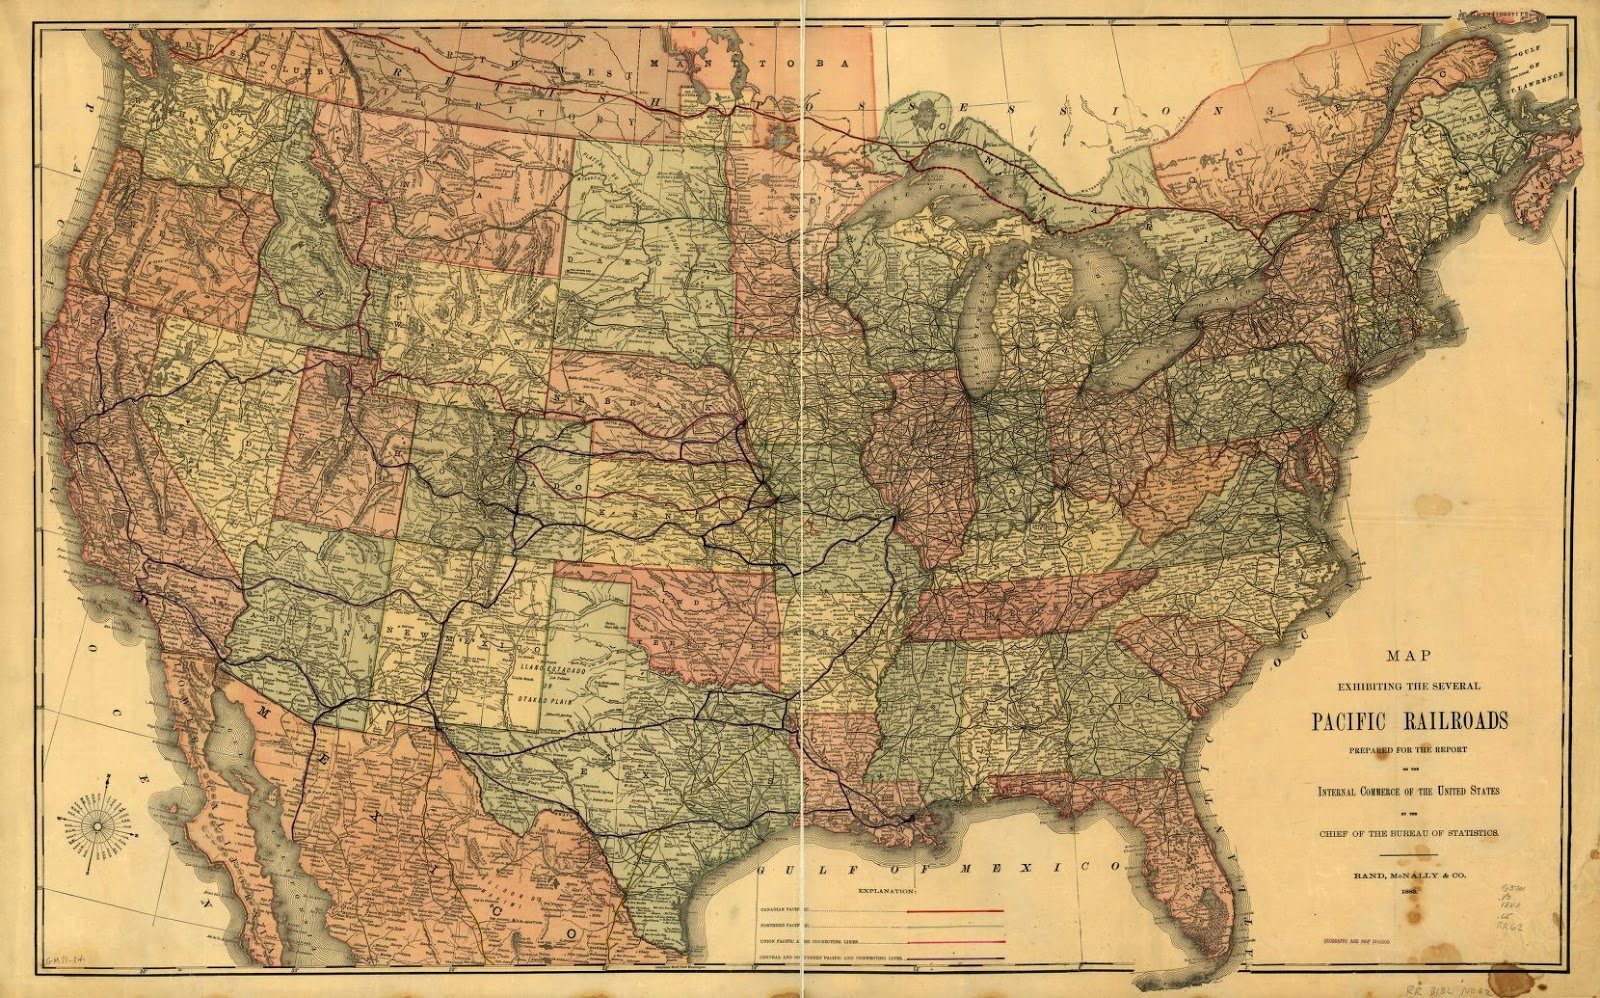 what do the dakota in minnesota the cheyenne and arapahoe in colorado and the navajo in new mexico have in common in may of 1862 president lincoln signed